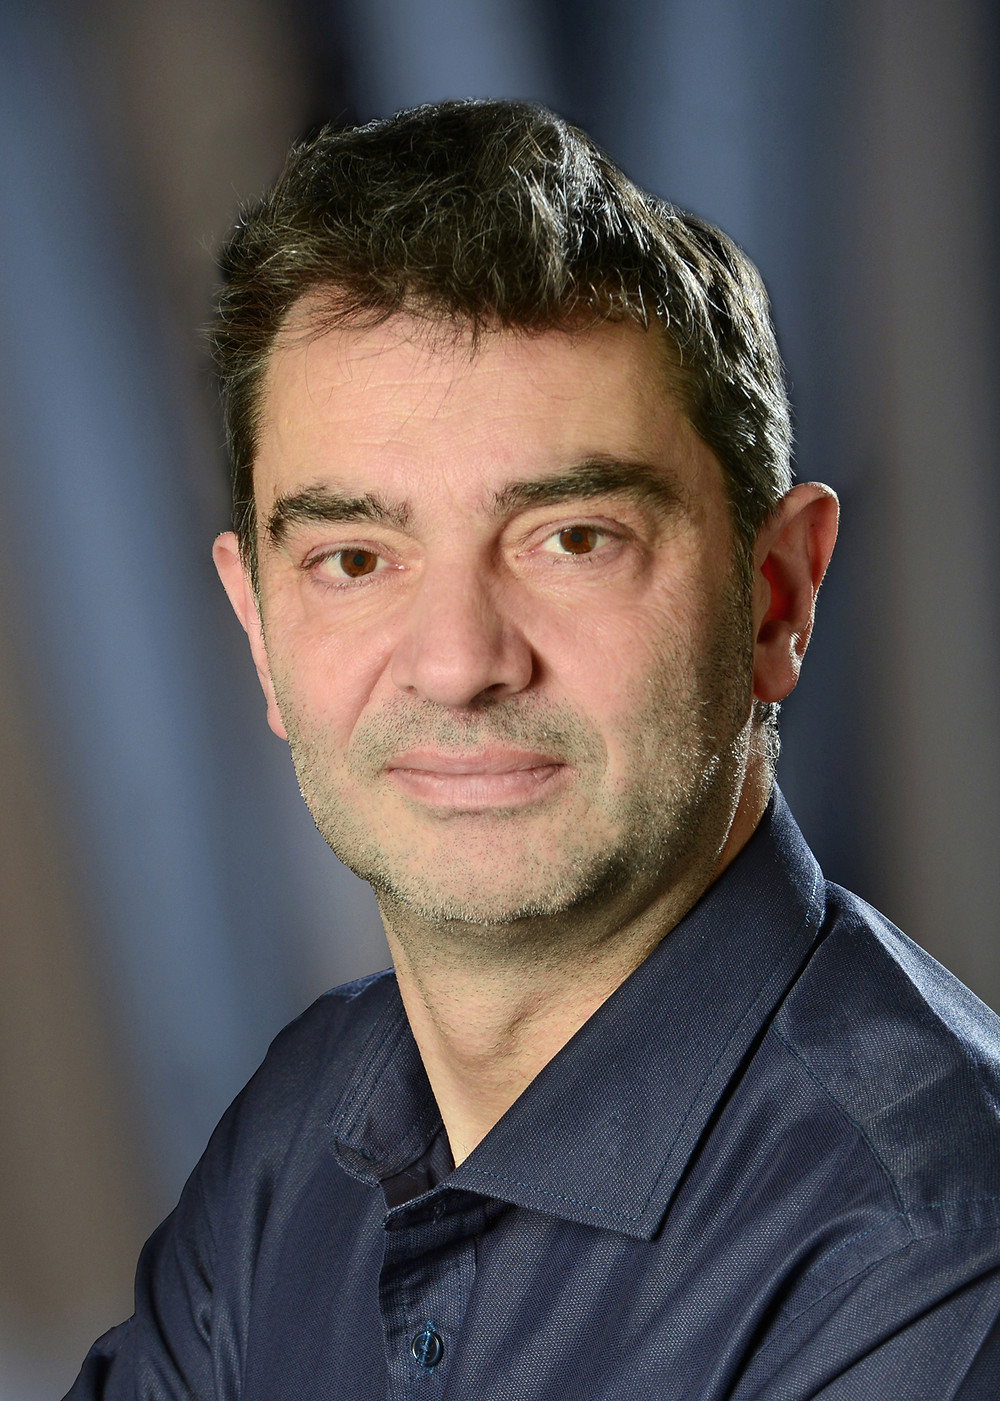 latakoo expands In Europe as Ivo Guilini appointed Sales Director for EMEA region